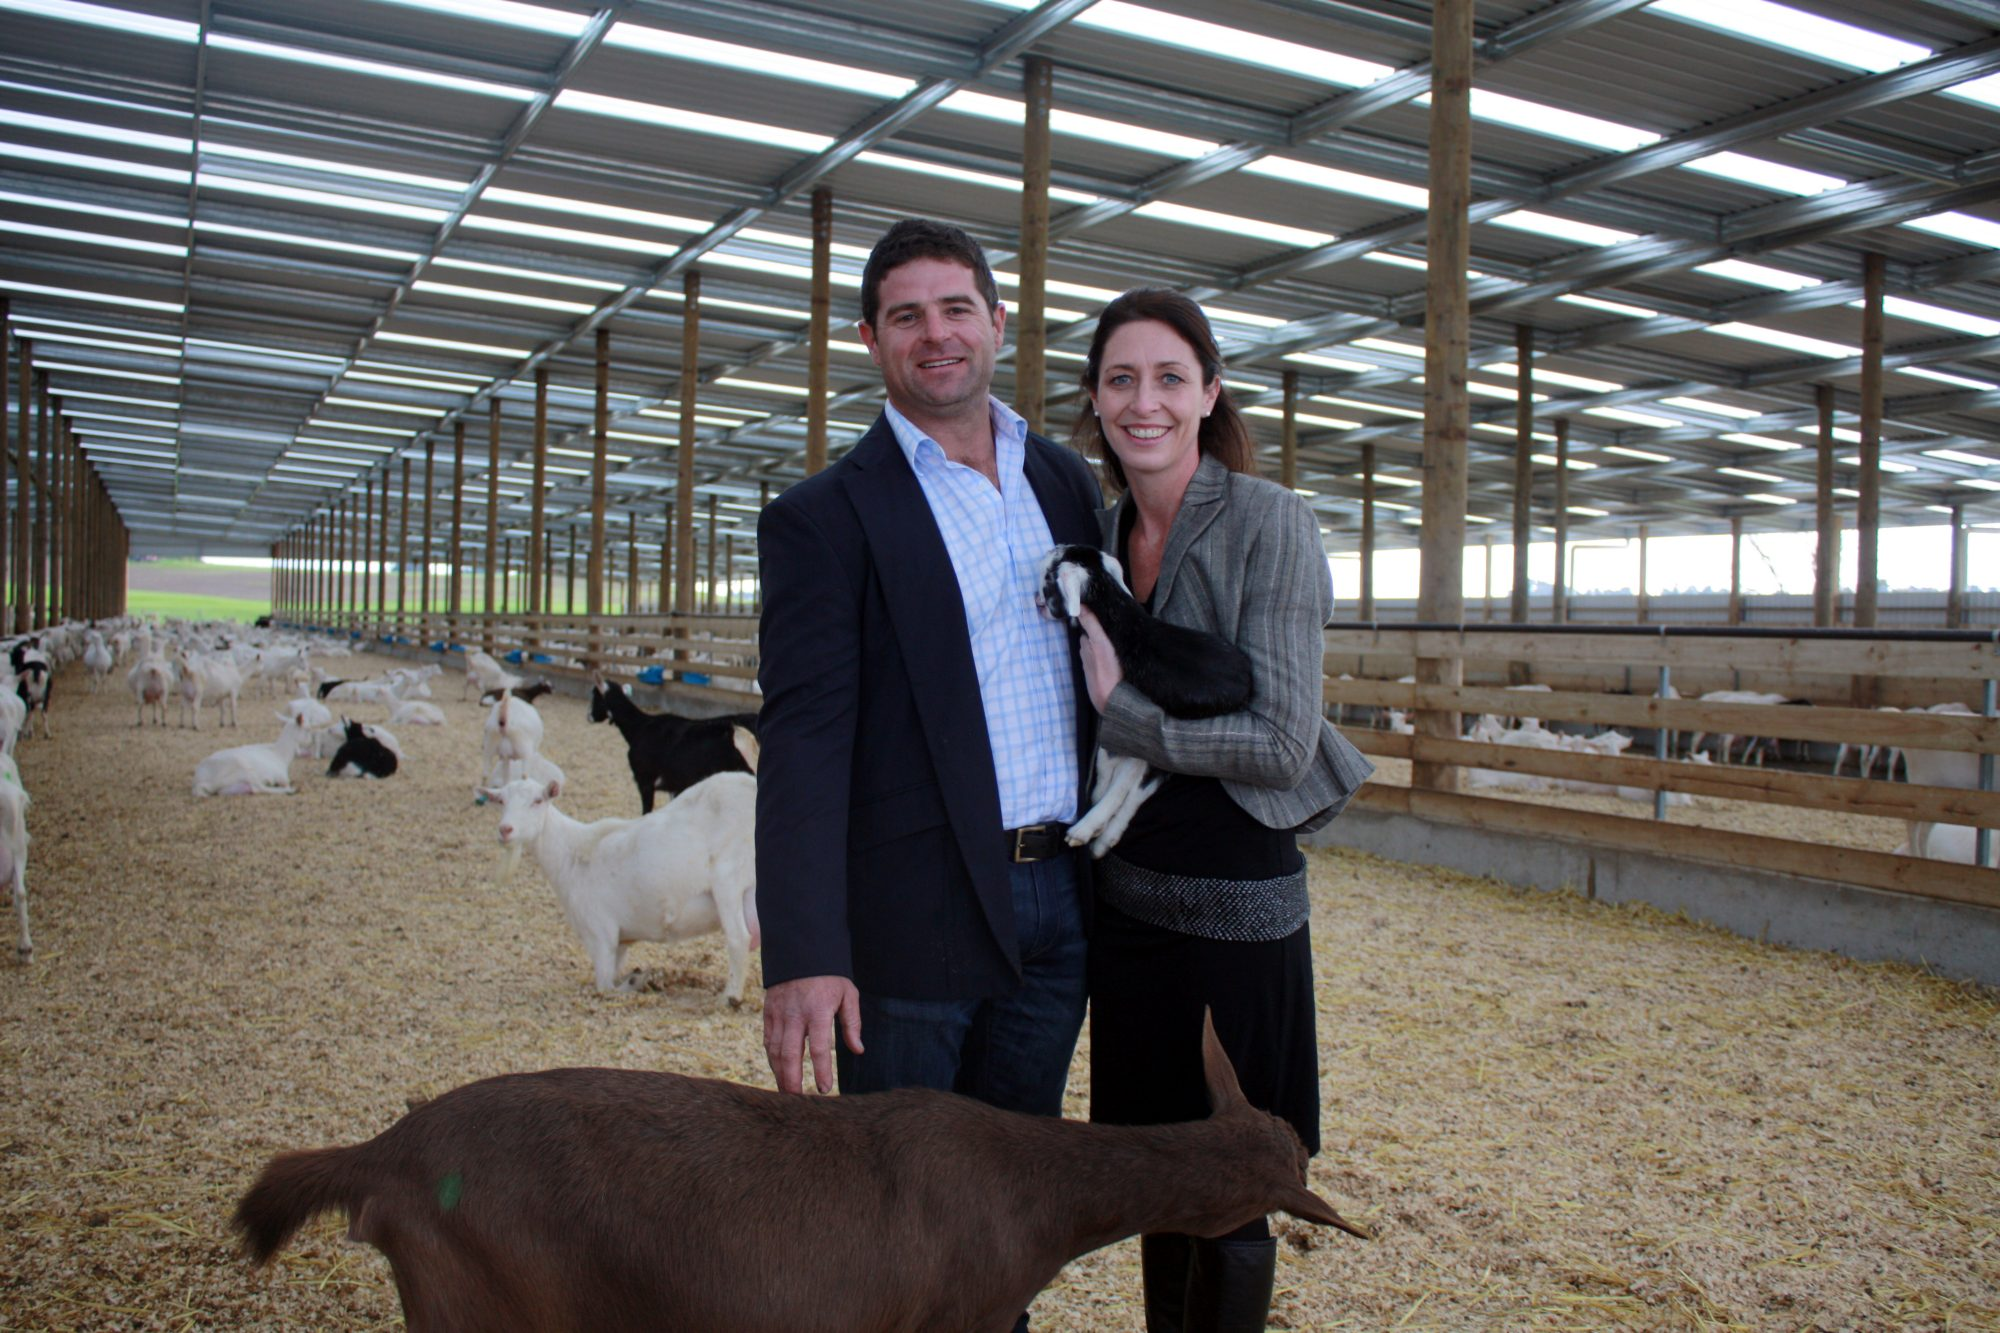 Matthew and Sarah Bolton and established the goat milking venture Oete Farms and formed a supply partnership with New Image Group Nutritionals who will process the milk into infant formula for the Asian market.